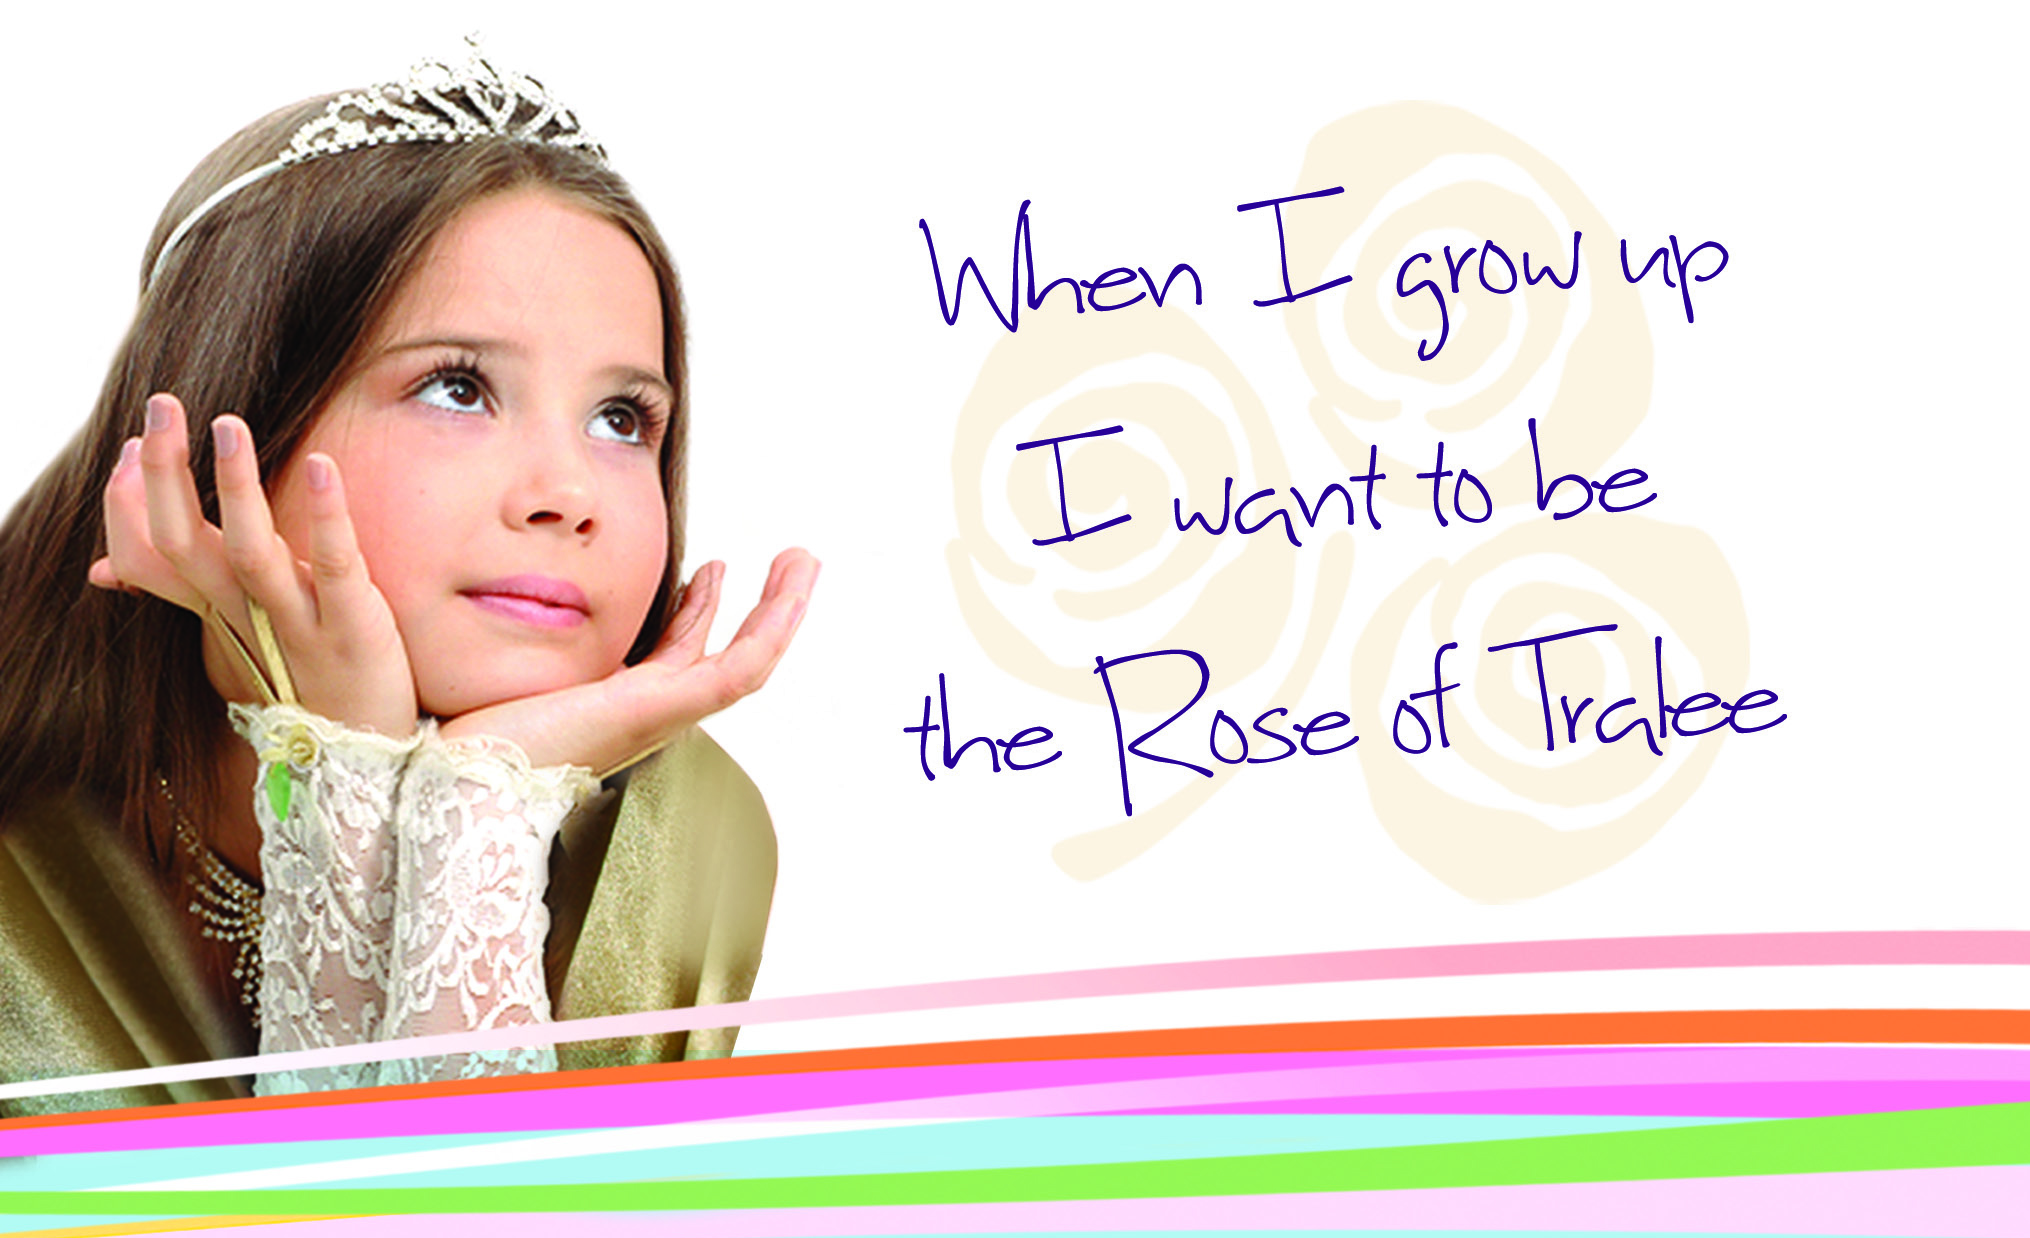 2017 HVIS search for a Rose of Tralee